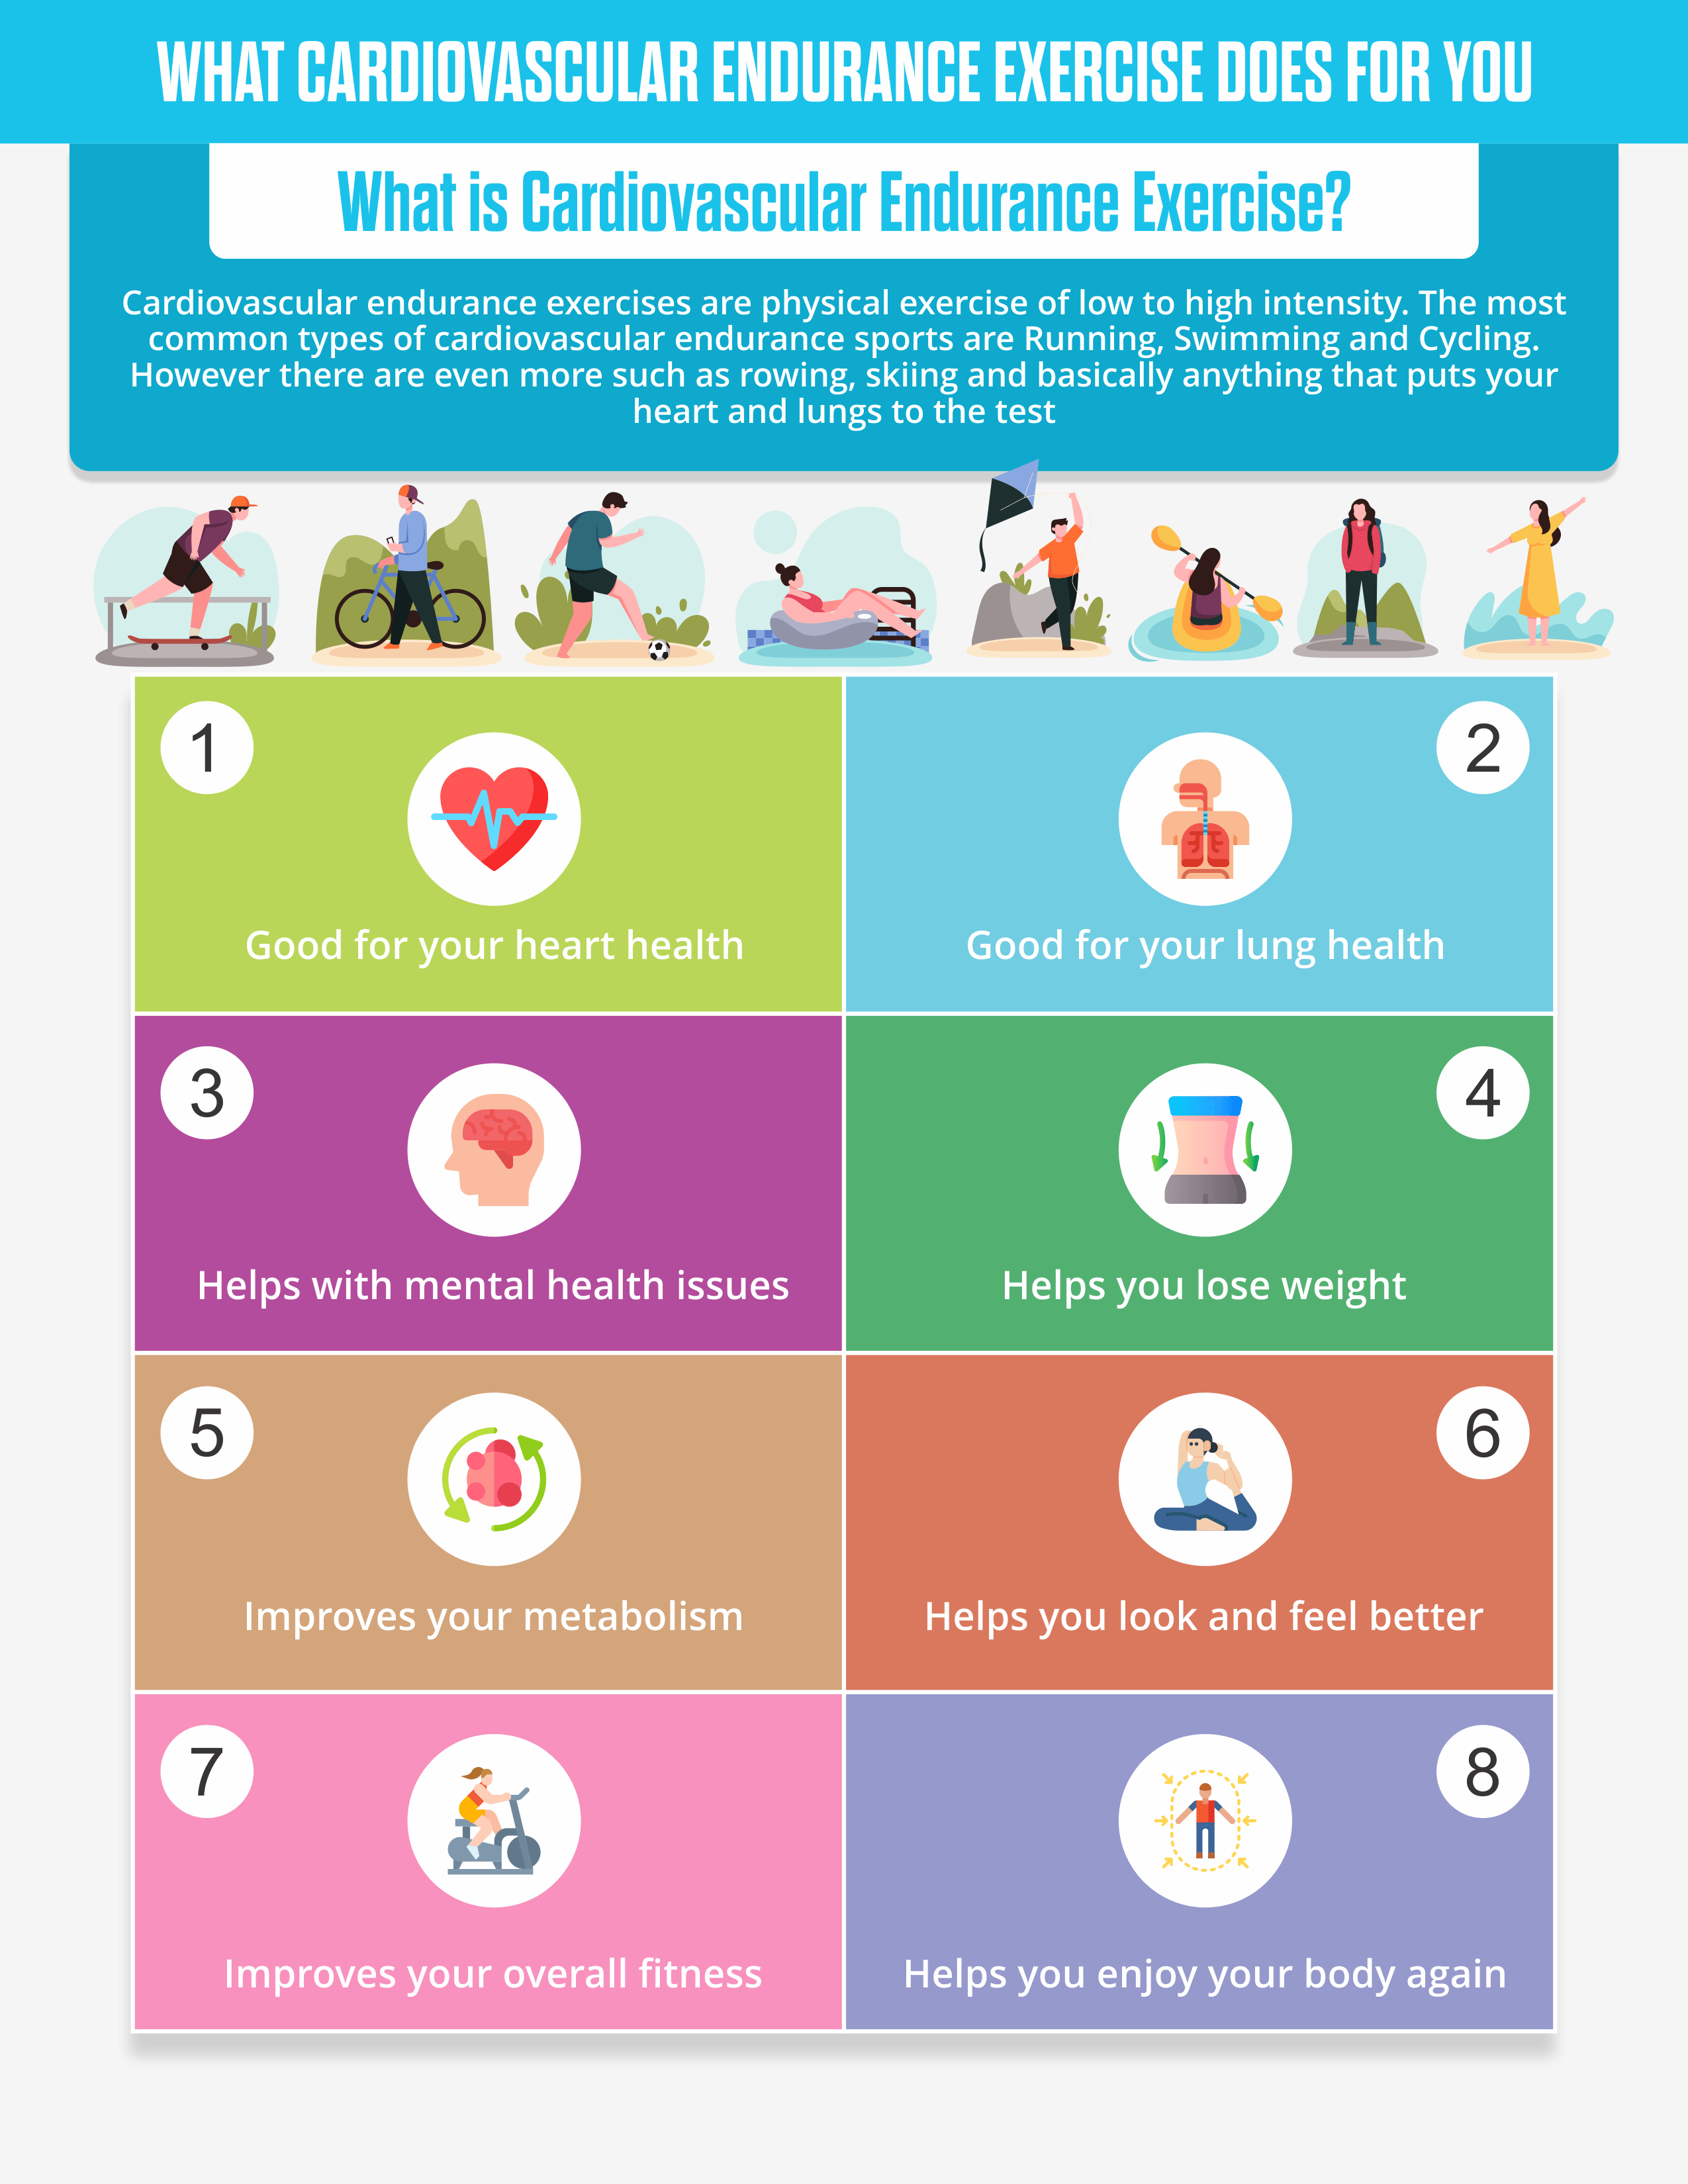 What-cardiovascular-endurance-exercise-does-for-you-infographic-plaza